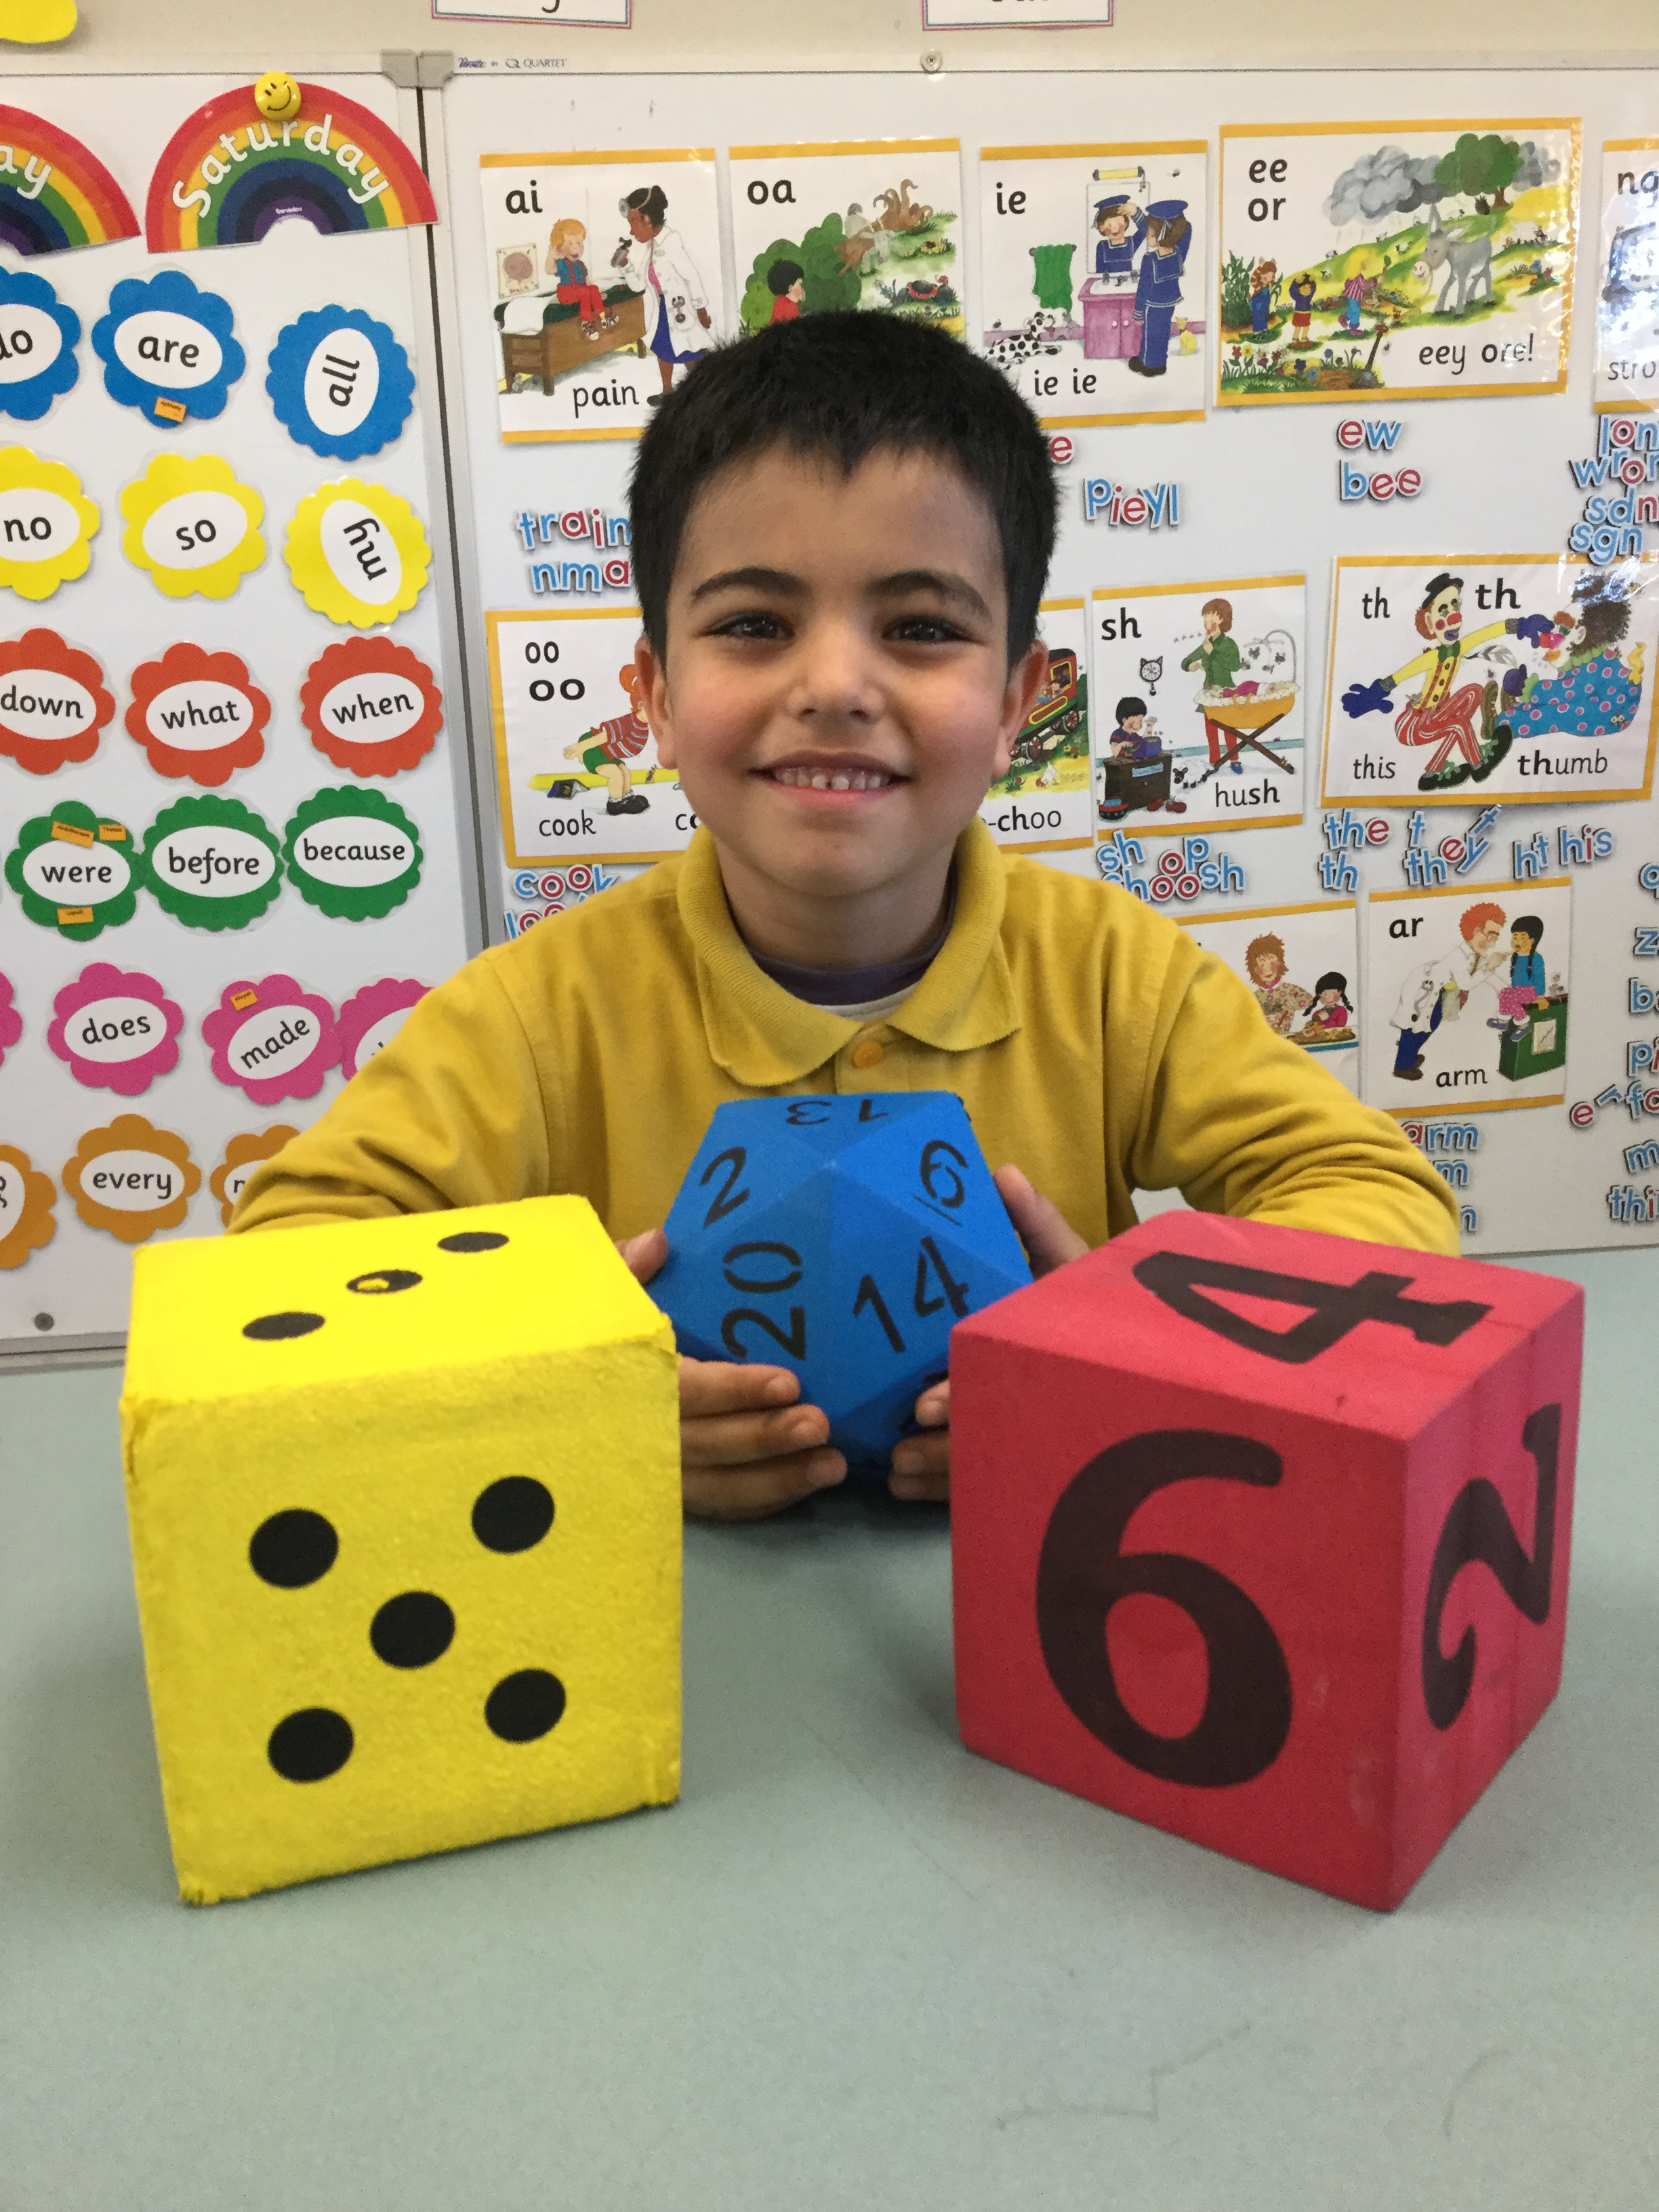 Adding dice in Maths